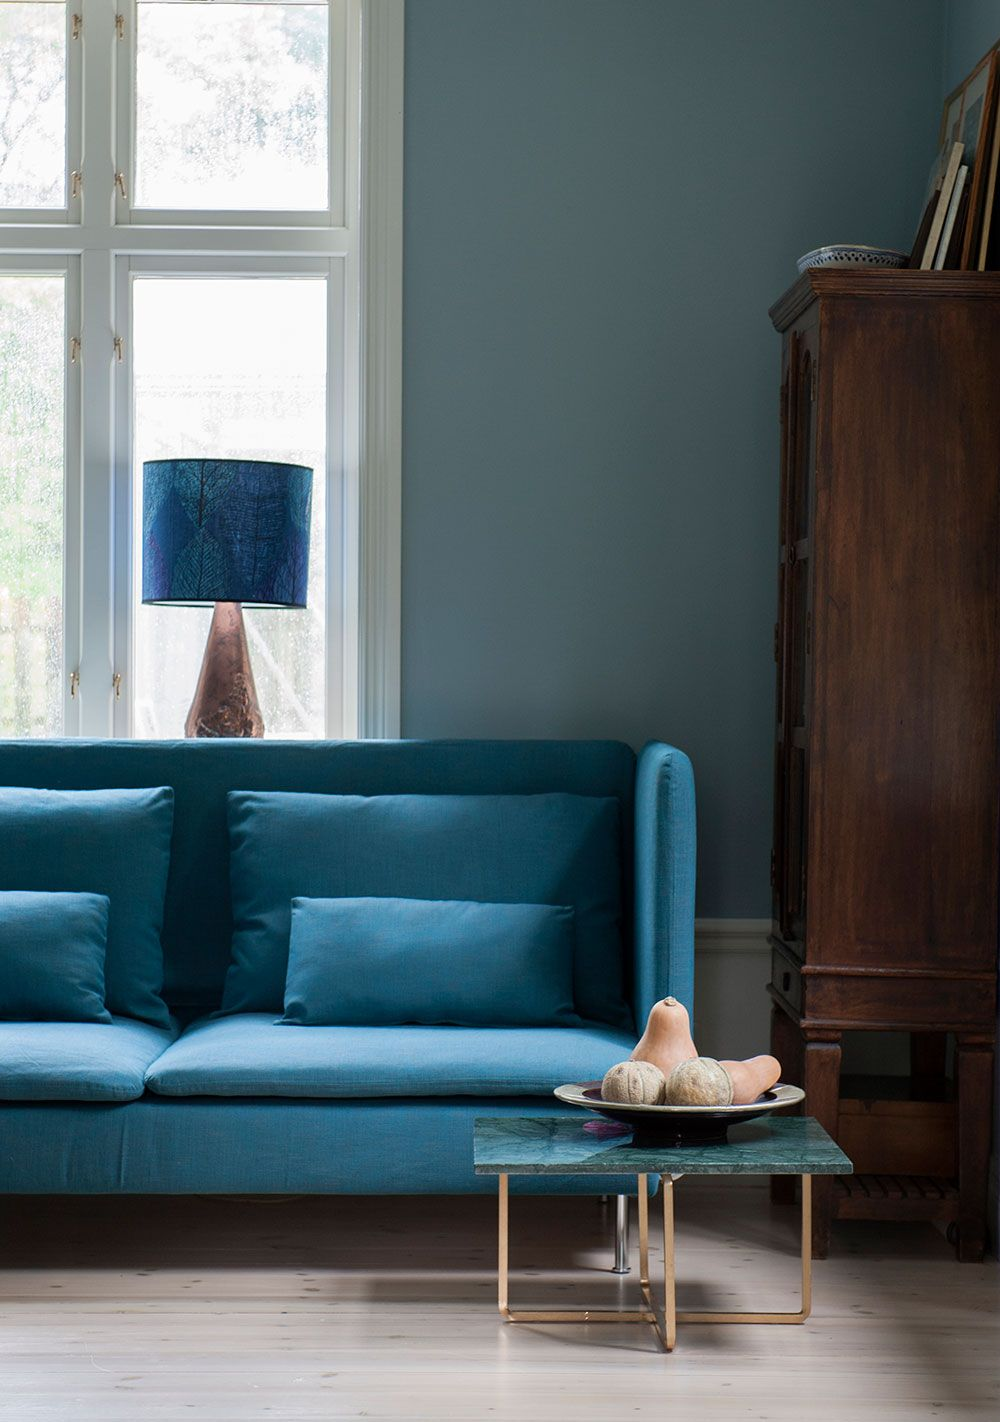 Teal IKEA Sderhamn sofa in Teal Blue Tegner Melange cover by